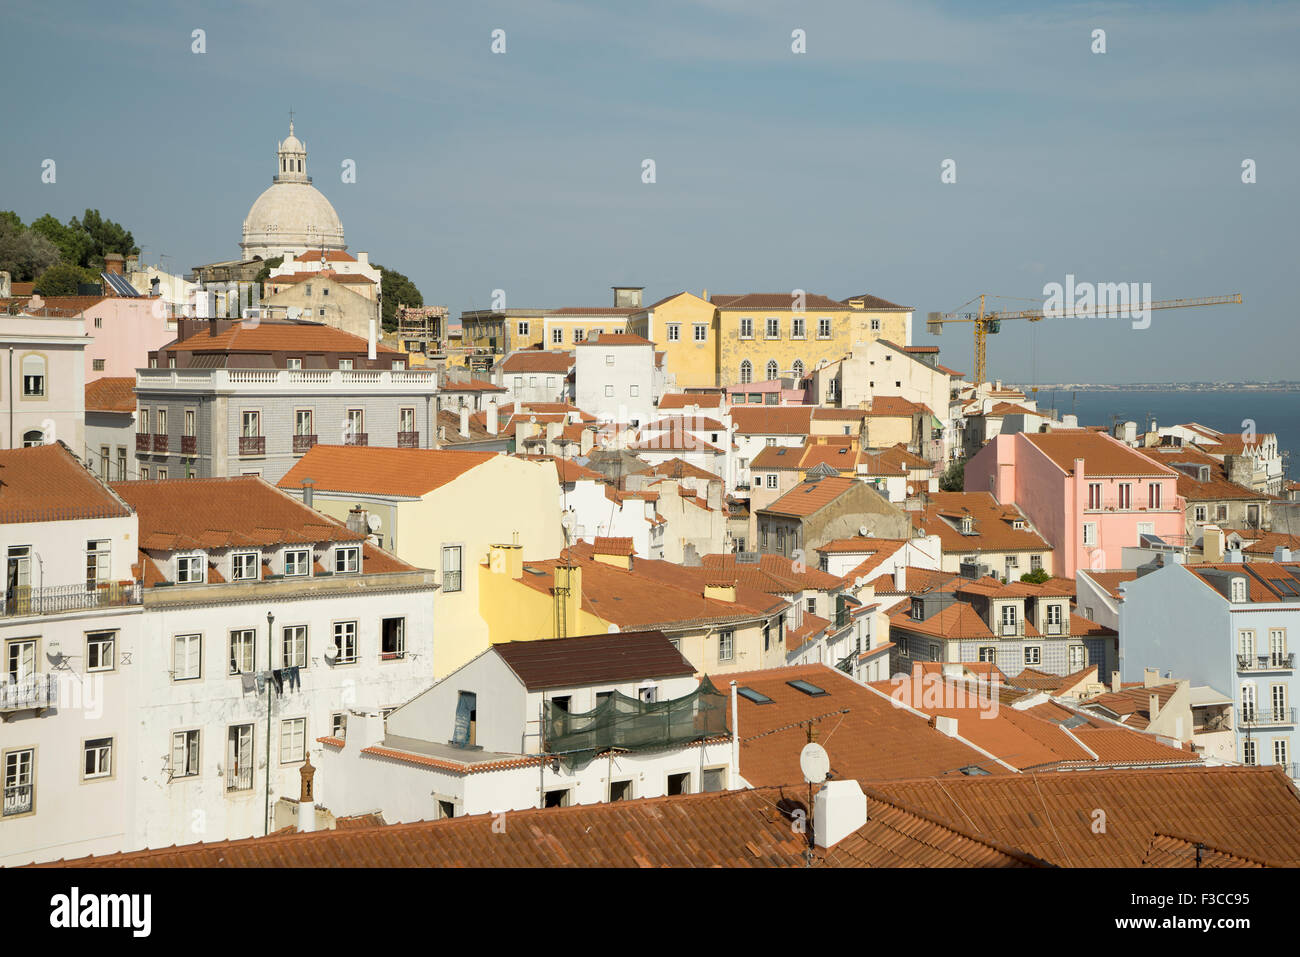 View of the Targa River over Red Rooftops, Lisbon, Portugal -1 - Stock Image